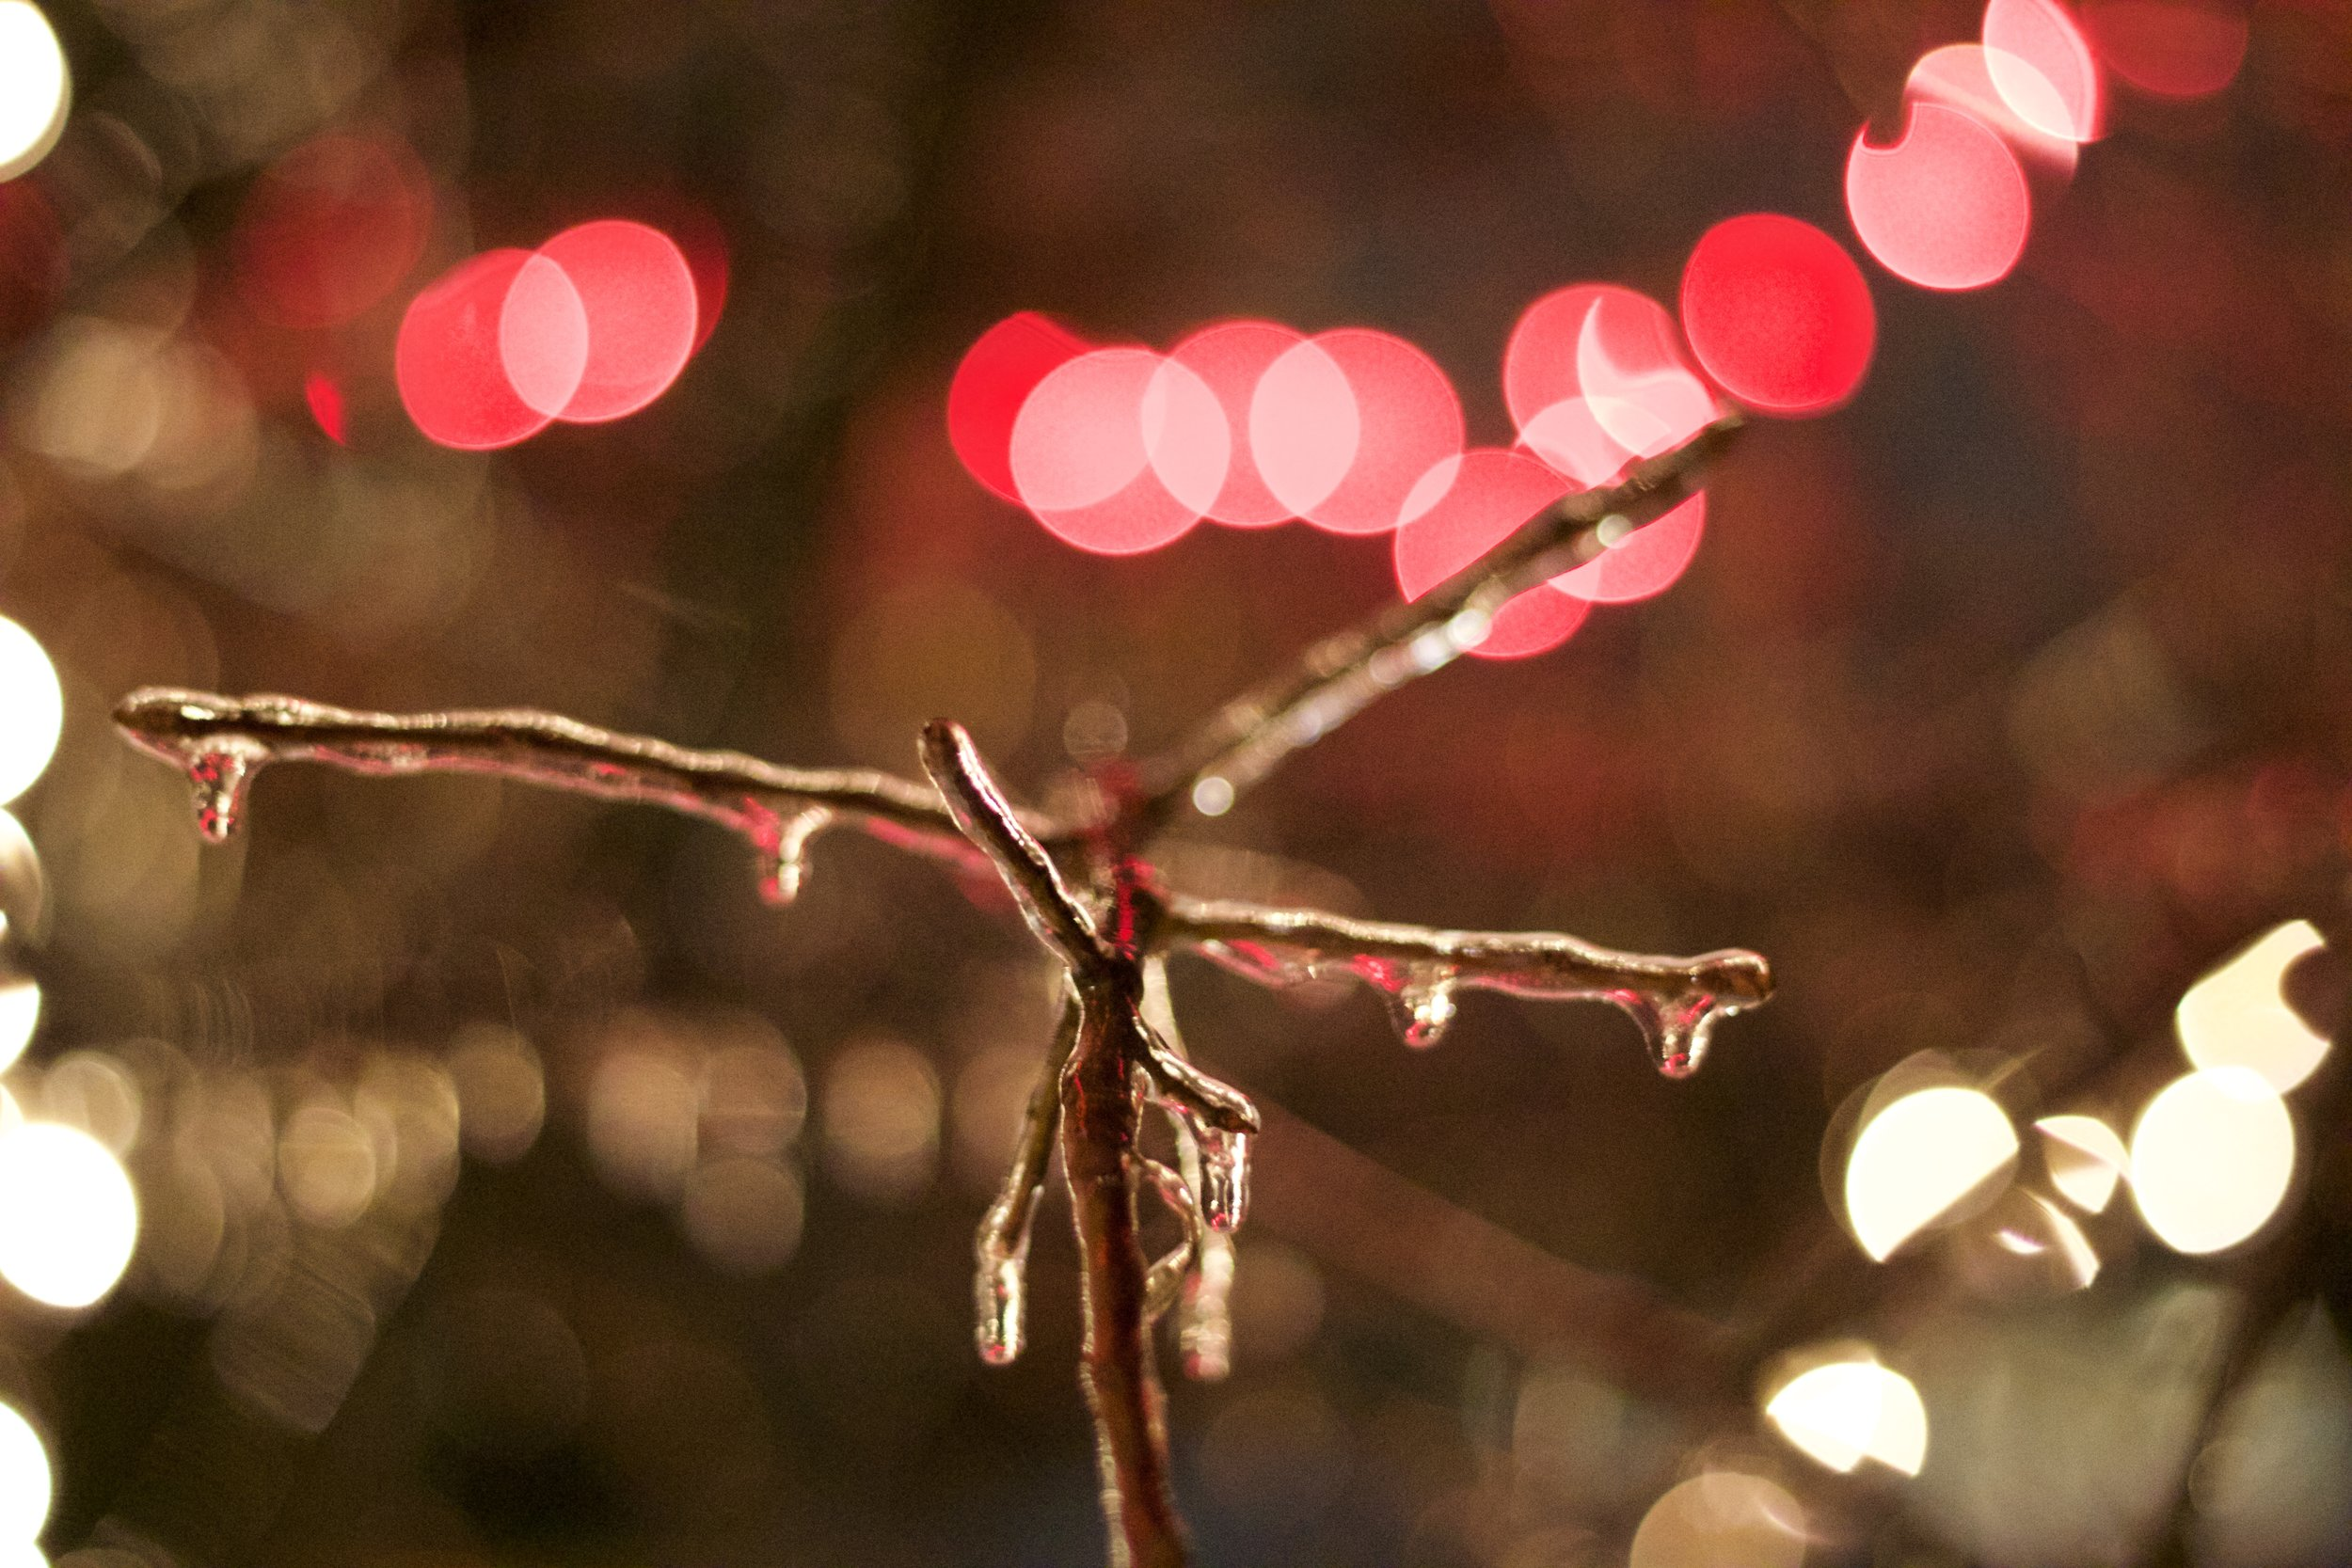 Here is a sample photo of mine, highlighting the outstanding low light performance, and ability to capture Bokeh with the 50mm  f 1.8  lens.